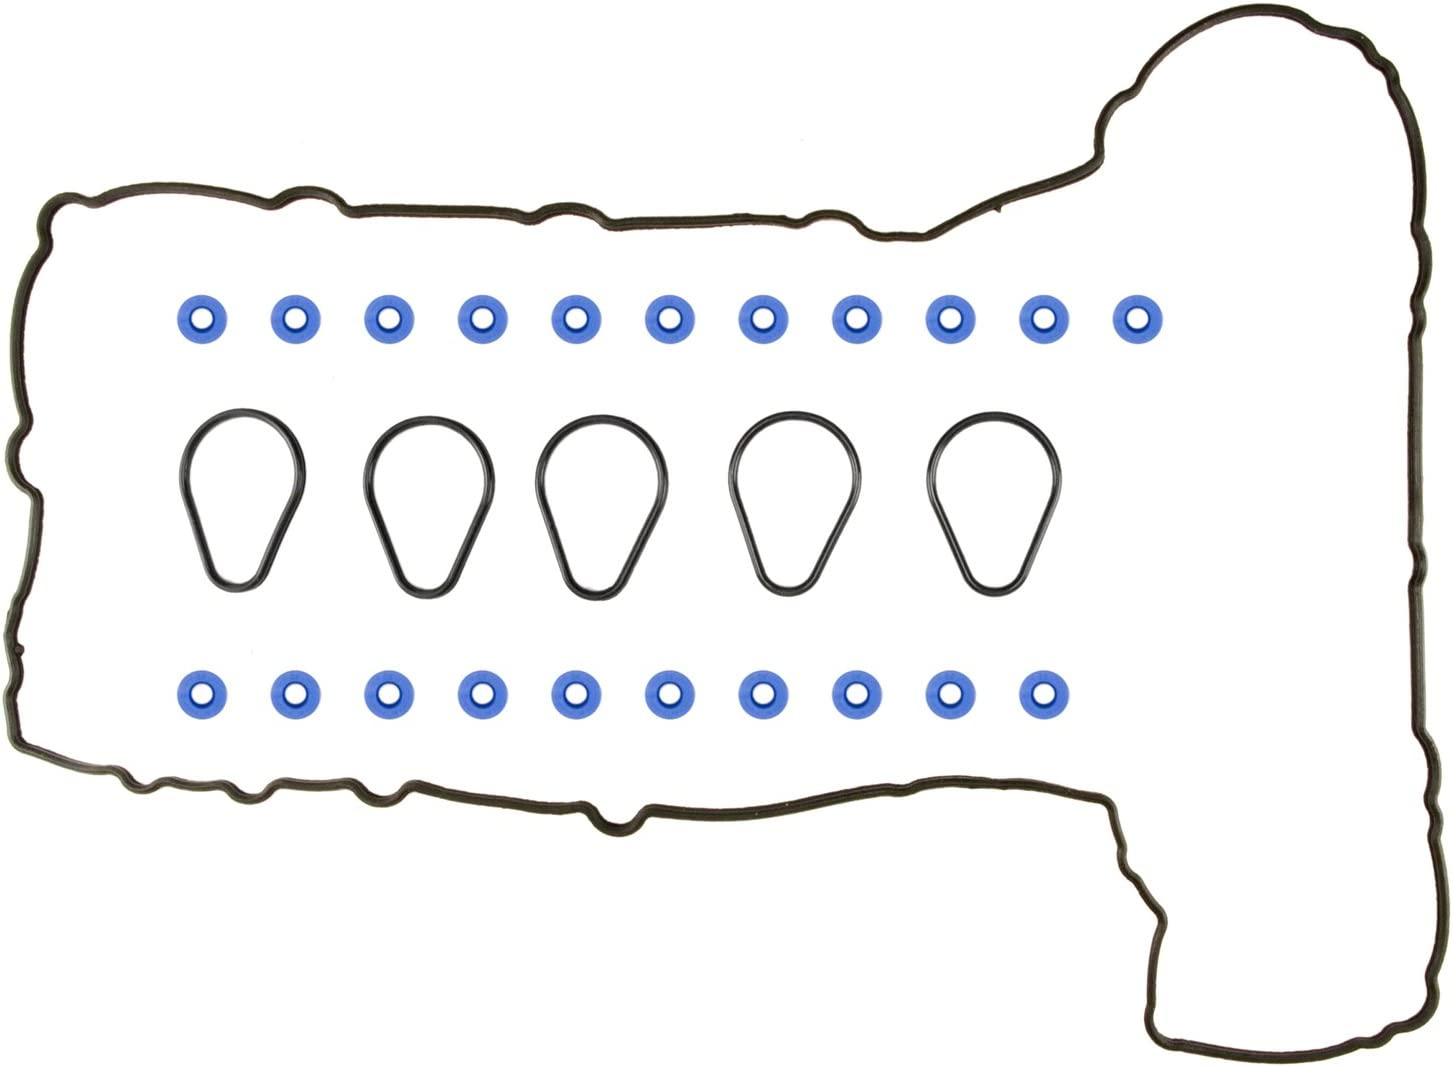 VS50703R Fel-Pro Vs50703R Felpro Vs 50703 R Valve Cover Gasket Set